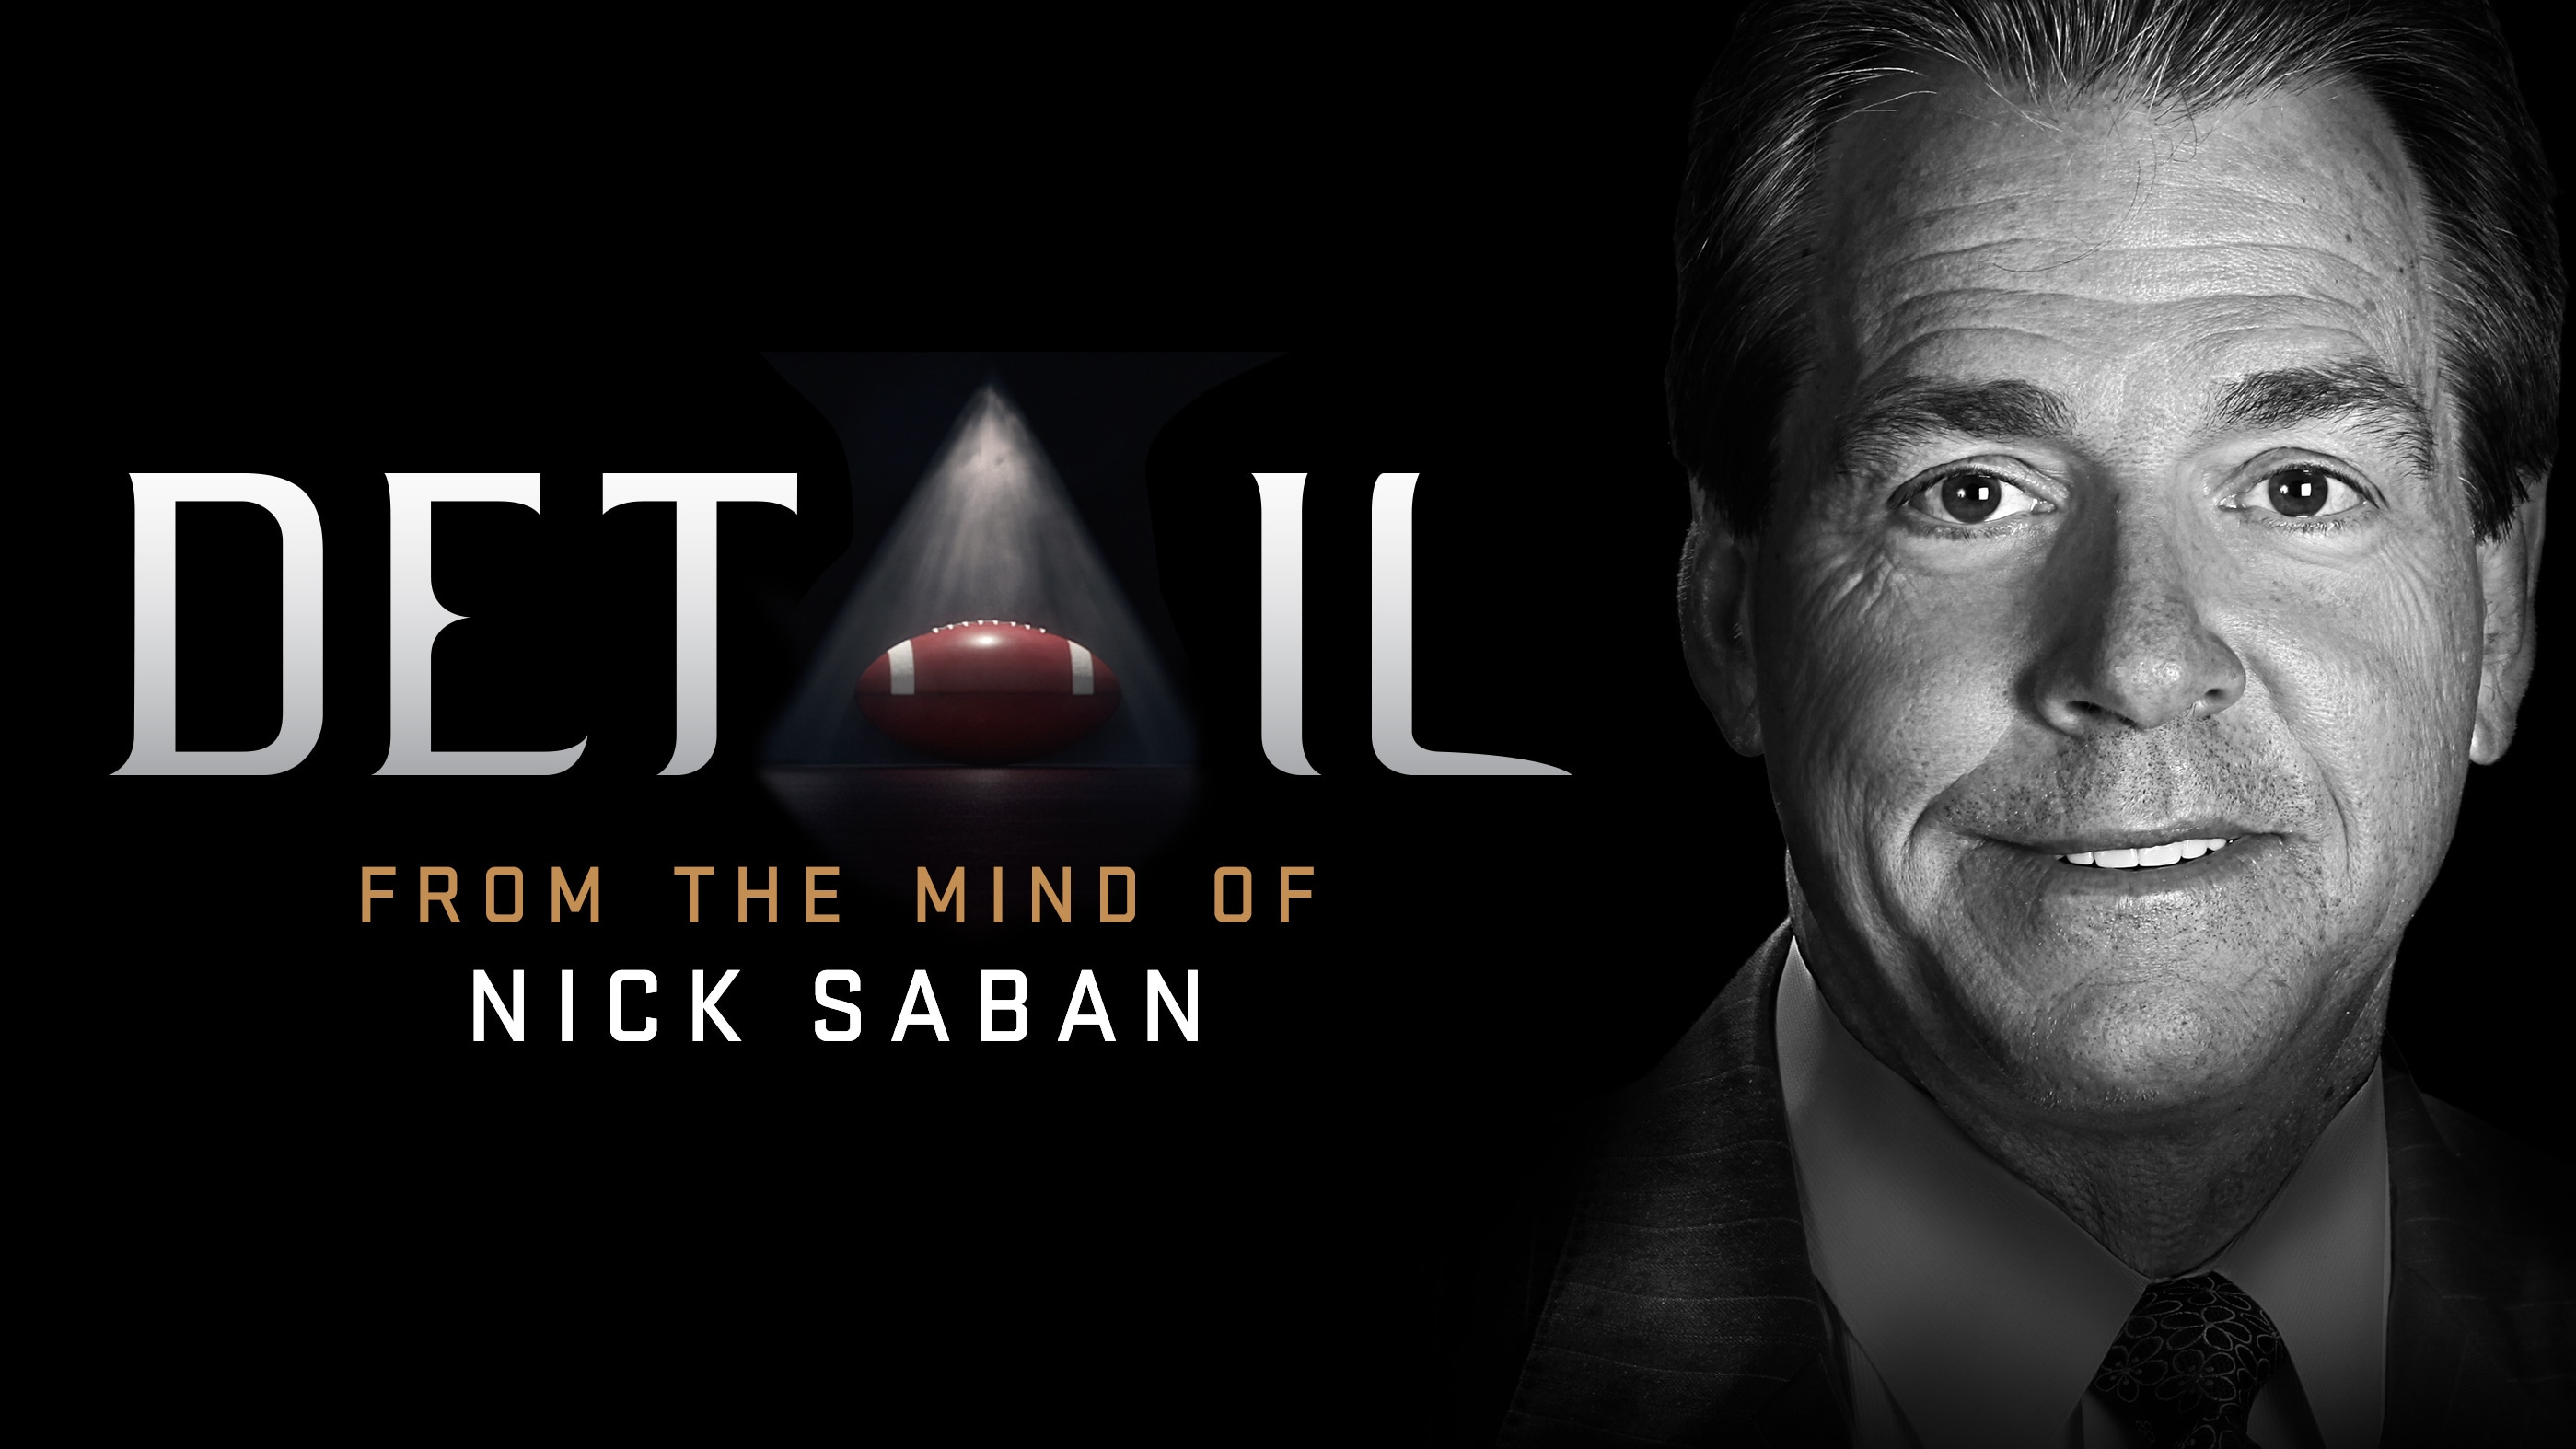 """Detail"" Exclusively on ESPN+: Nick Saban's Pre-Draft Analysis of Joe Burrow and Tua Tagovailoa"